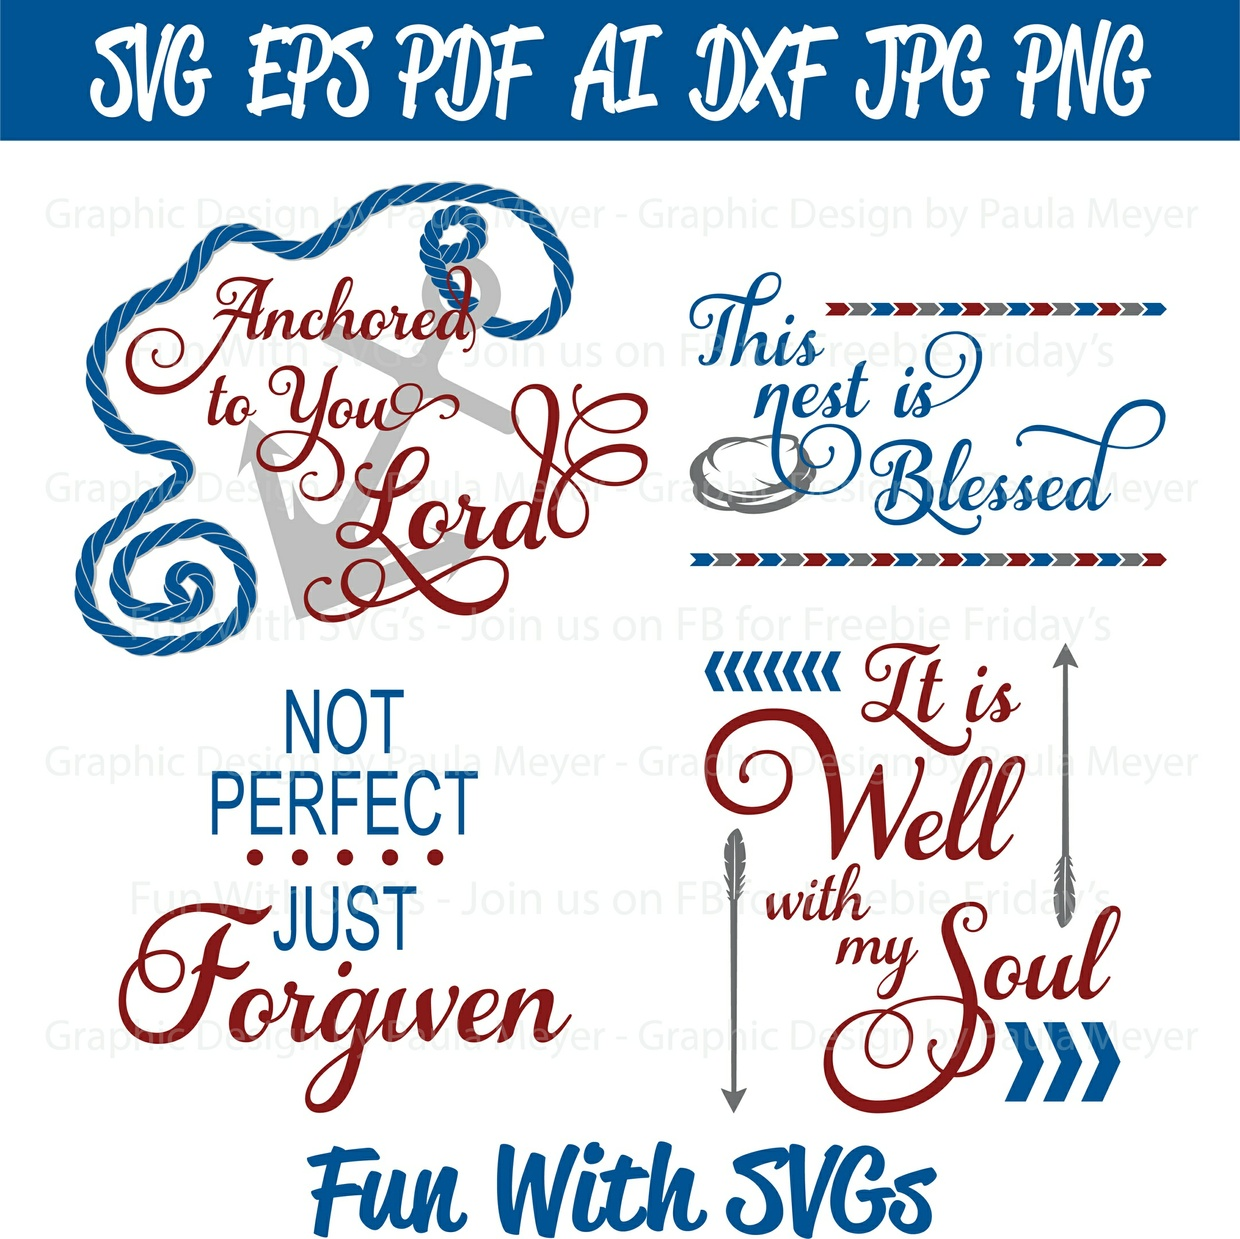 Anchored to You Lord - SVG Cut File, High Resolution Printable Graphics and Editable Vector Art